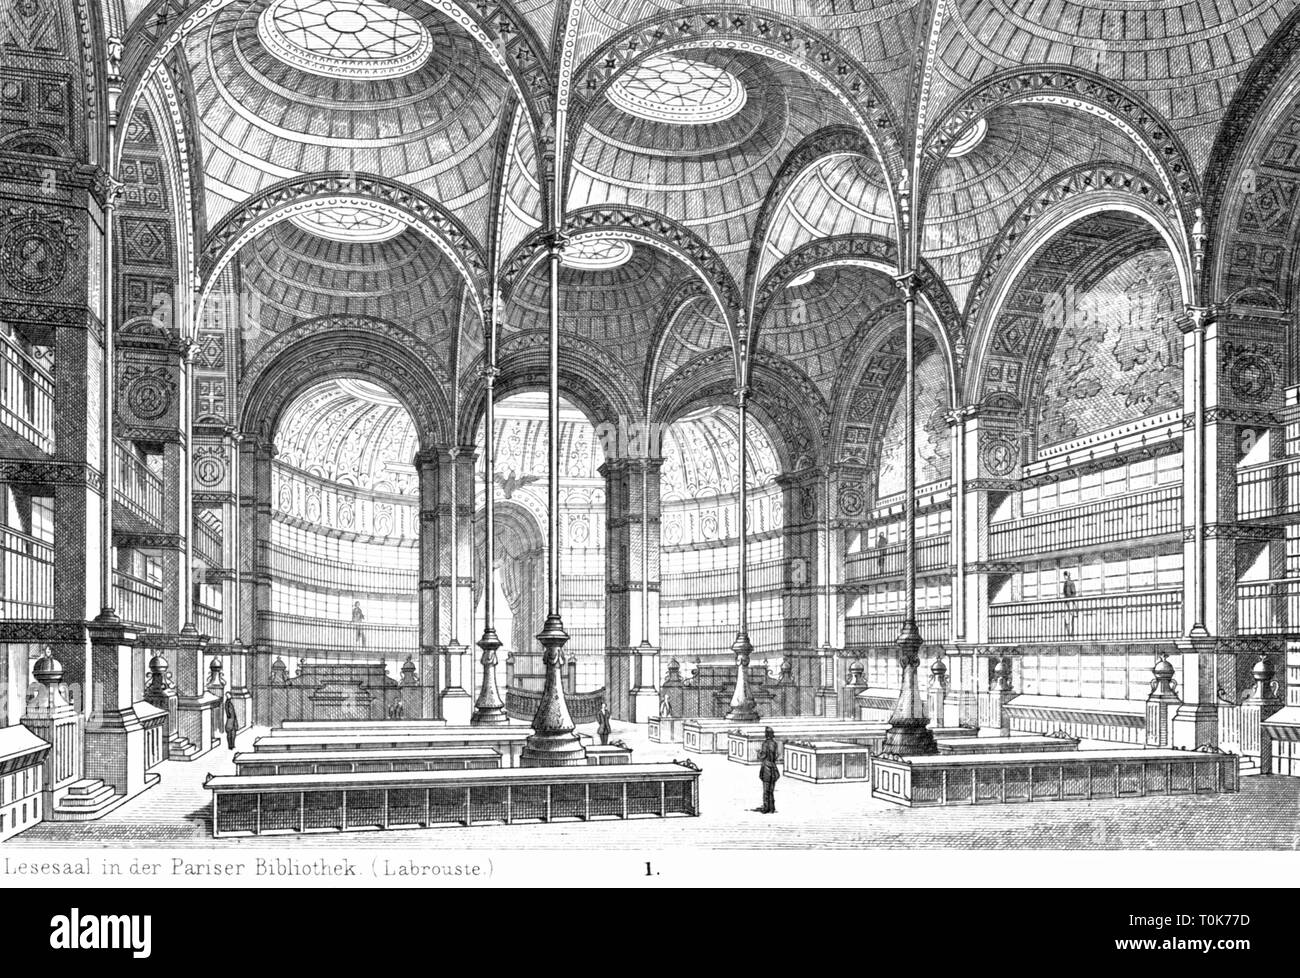 geography / travel, France, Paris, buildings, National Library of France (Bibliotheque Nationale de France), interior view, reading room, opened in 1868, illustration from 'Denkmaeler der Kunst' (Monuments of Art), by Wilhelm Luebke and Carl von Luetzow, 3rd edition, Stuttgart 1879, volume 2, steel engraving after drawing by Baldinger, chapter on architecture, plate LXII, Denkmaler, Denkmäler, Lubke, Lübke, Lutzow, Lützow, historic, historical, 19th century, French, library, libraries, reading, read, hall, halls, pillar, pillars, Additional-Rights-Clearance-Info-Not-Available - Stock Image